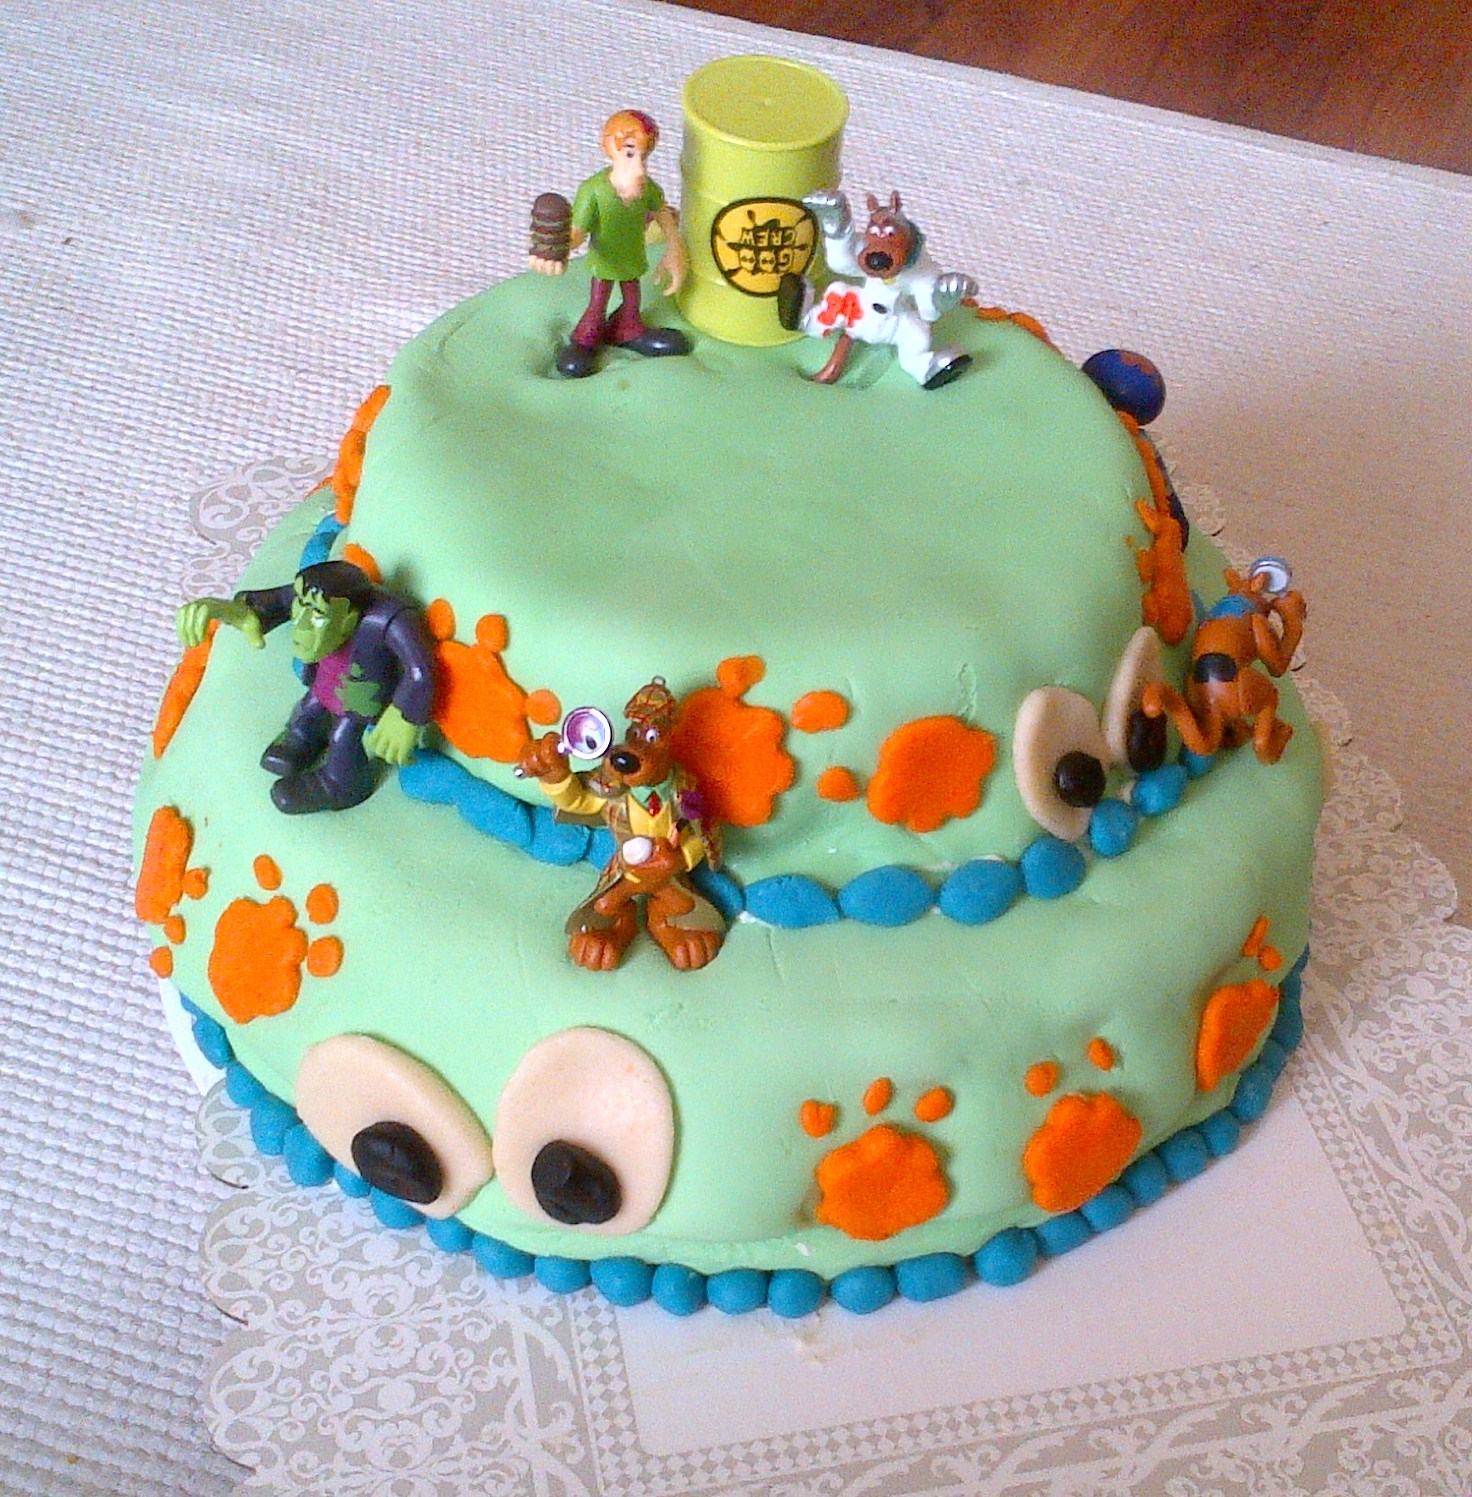 Yusefs 5th Birthday Scooby Doo Cake Monkey Kitchen